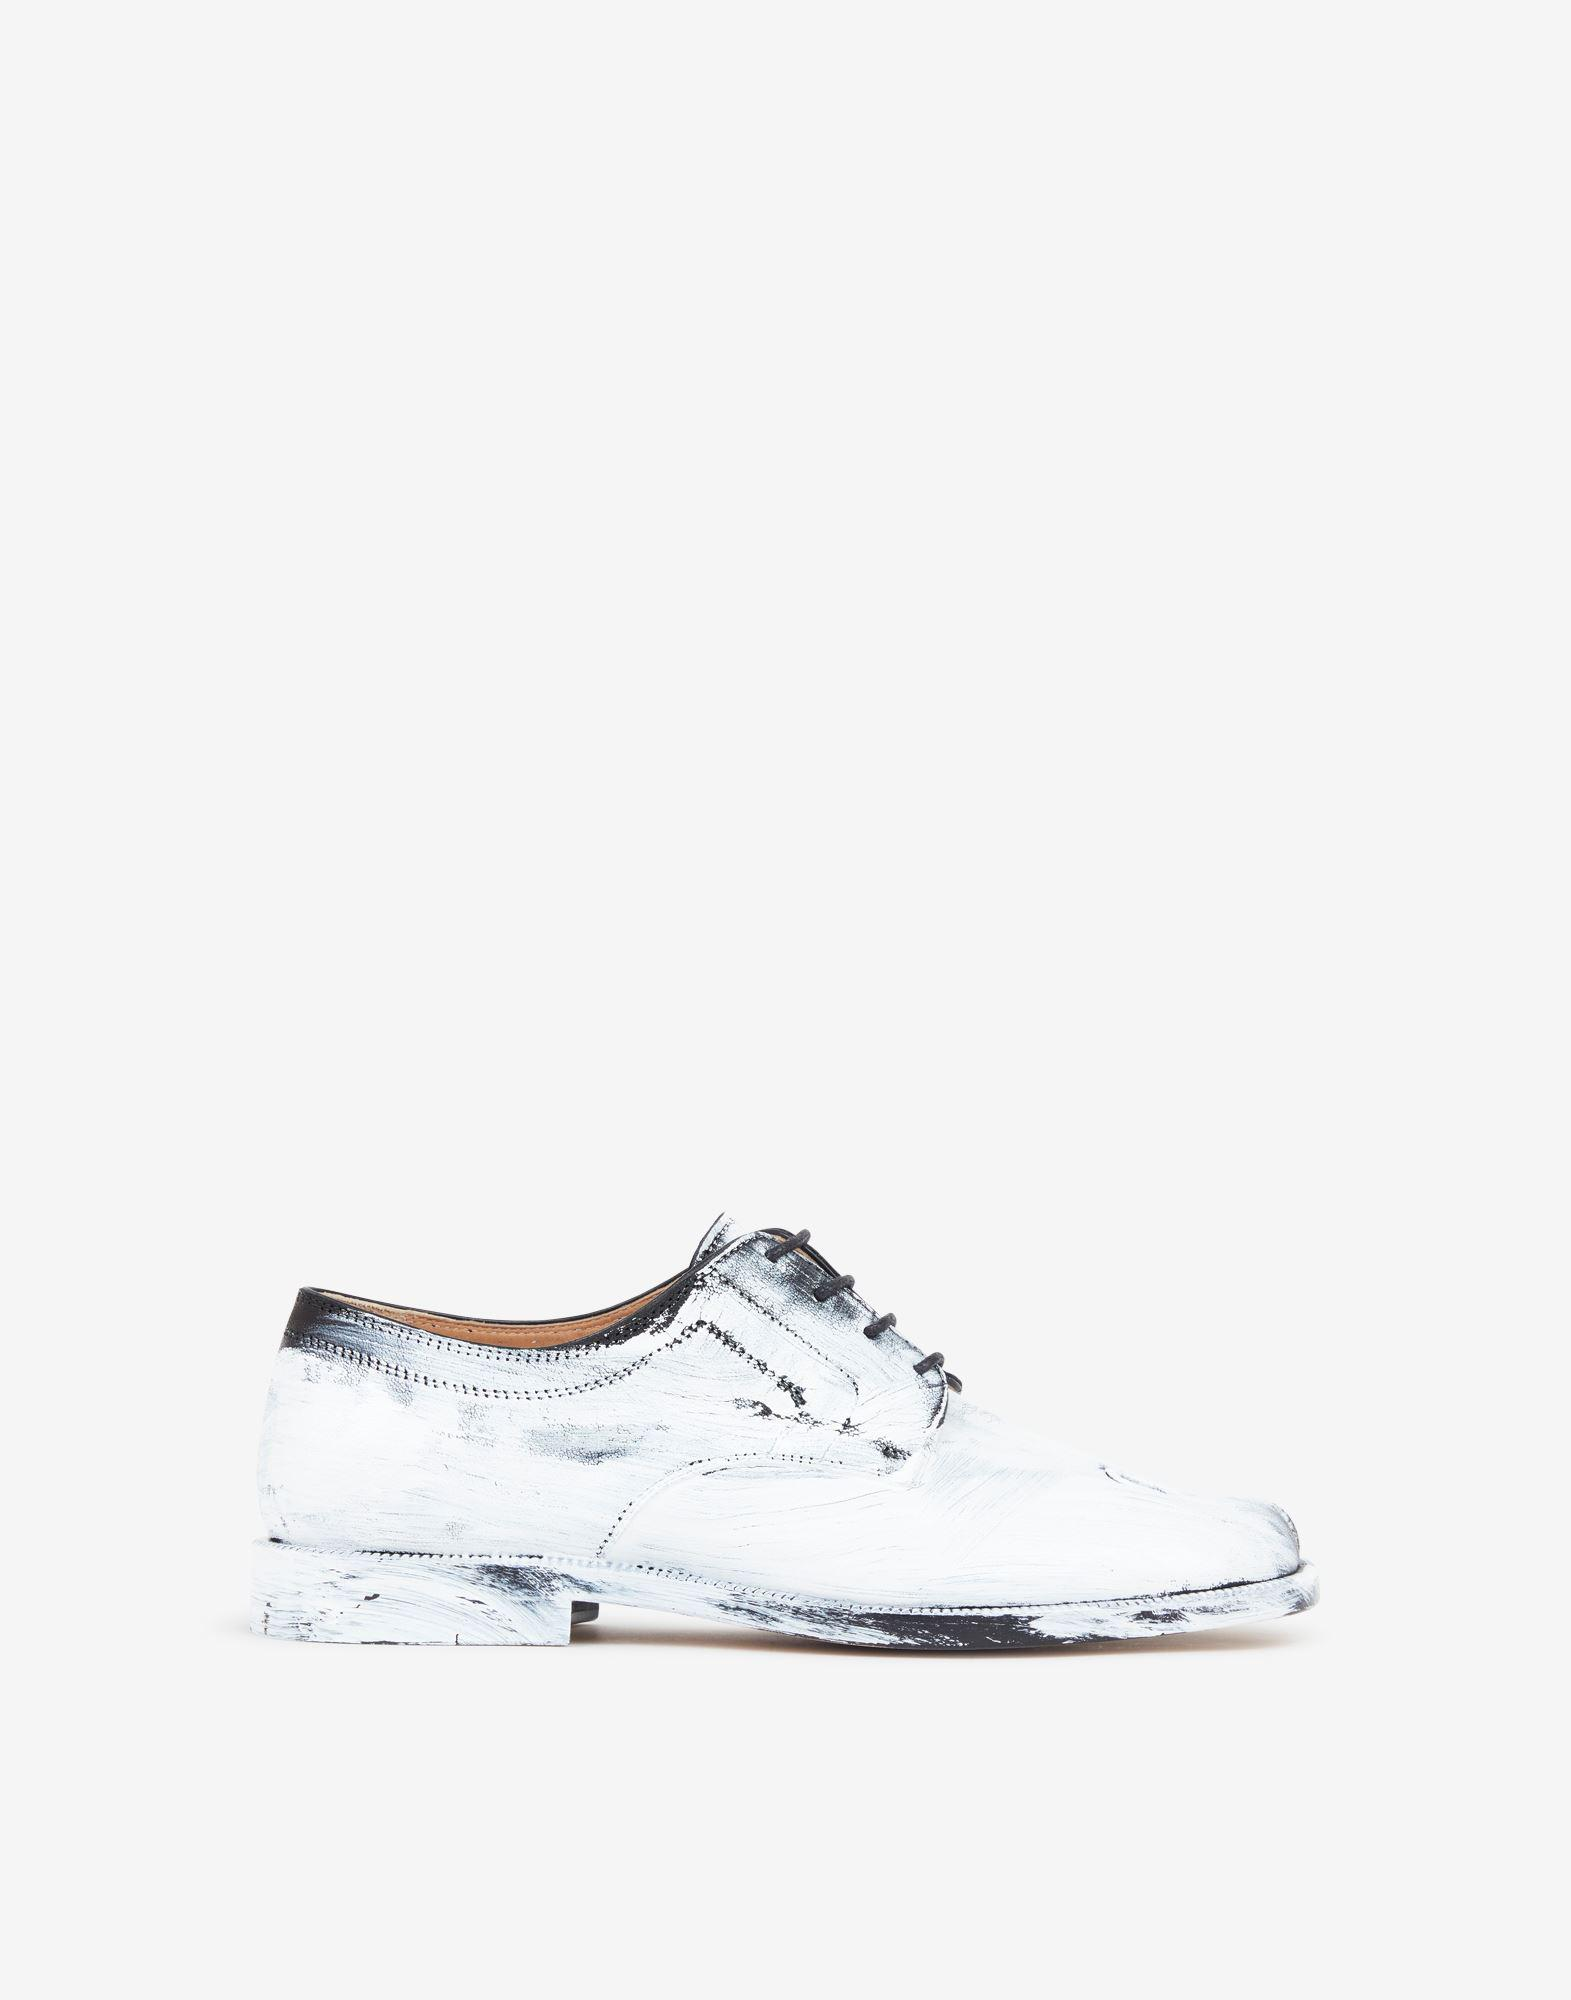 Tabi Bianchetto lace-up shoes